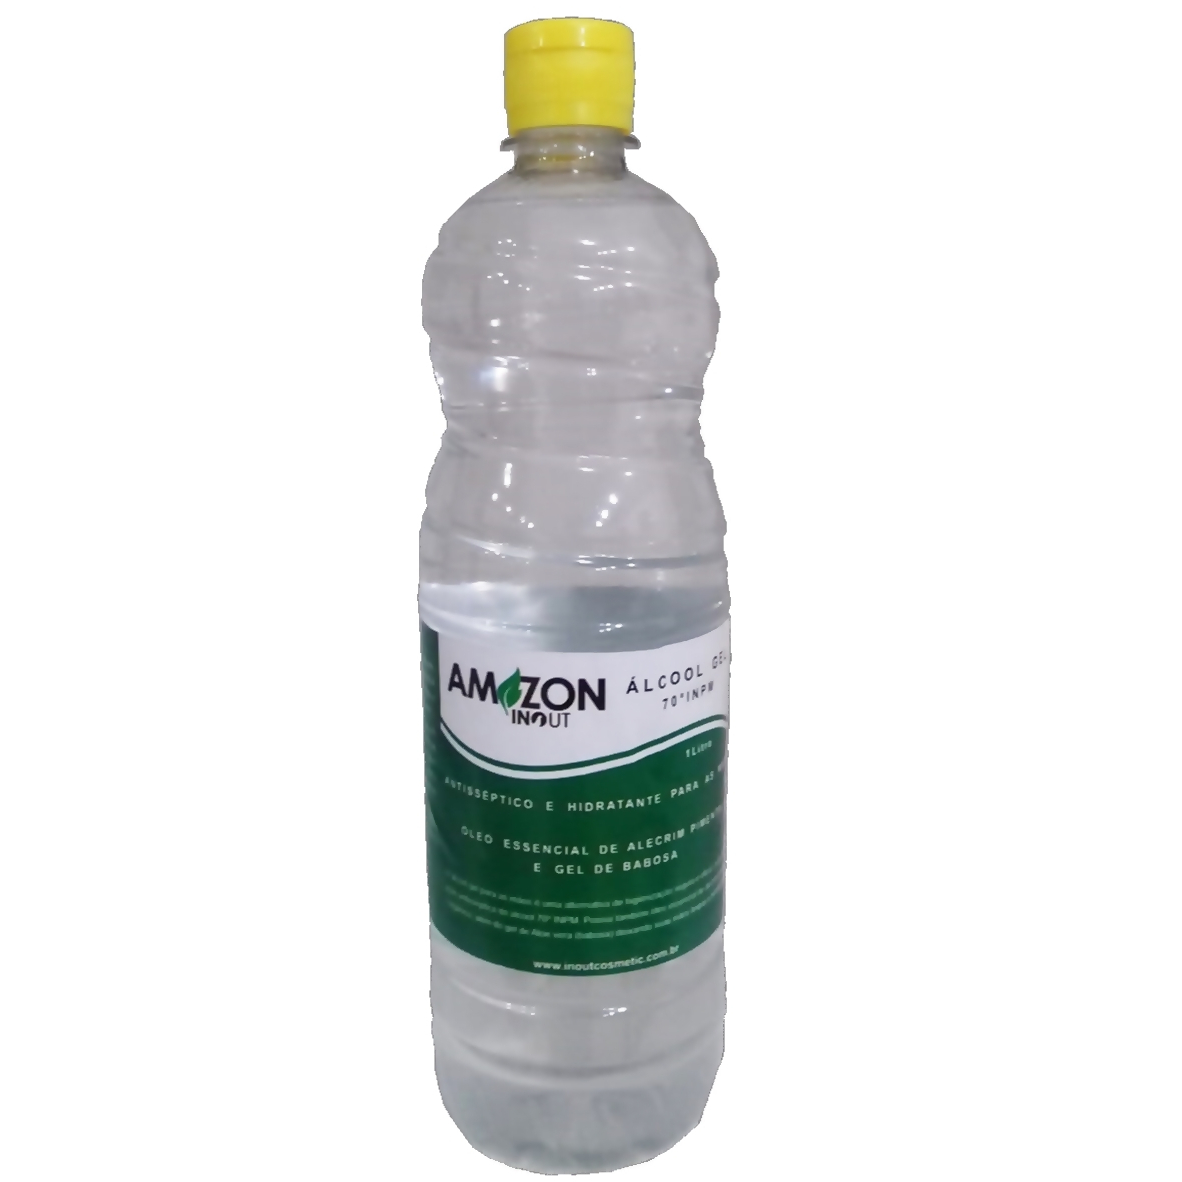 Álcool Em Gel 70º Antisséptico Amazon In Out 1L